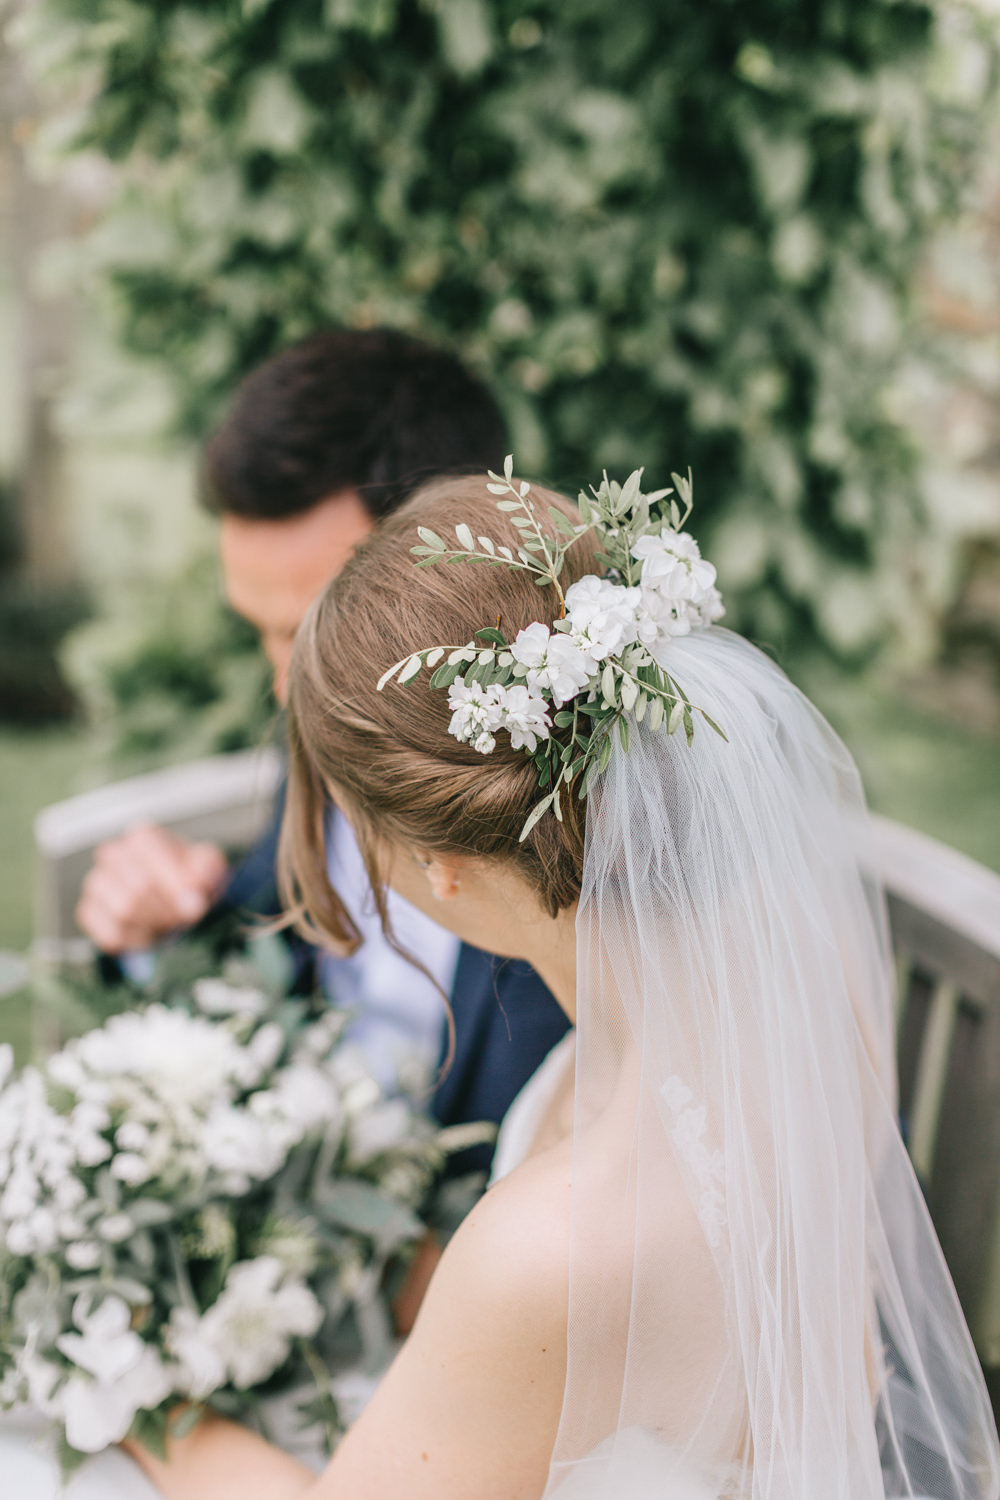 Flowers Bride Bridal White Greenery Foliage Veil Hair Healey Barn Wedding Amy Lou Photography